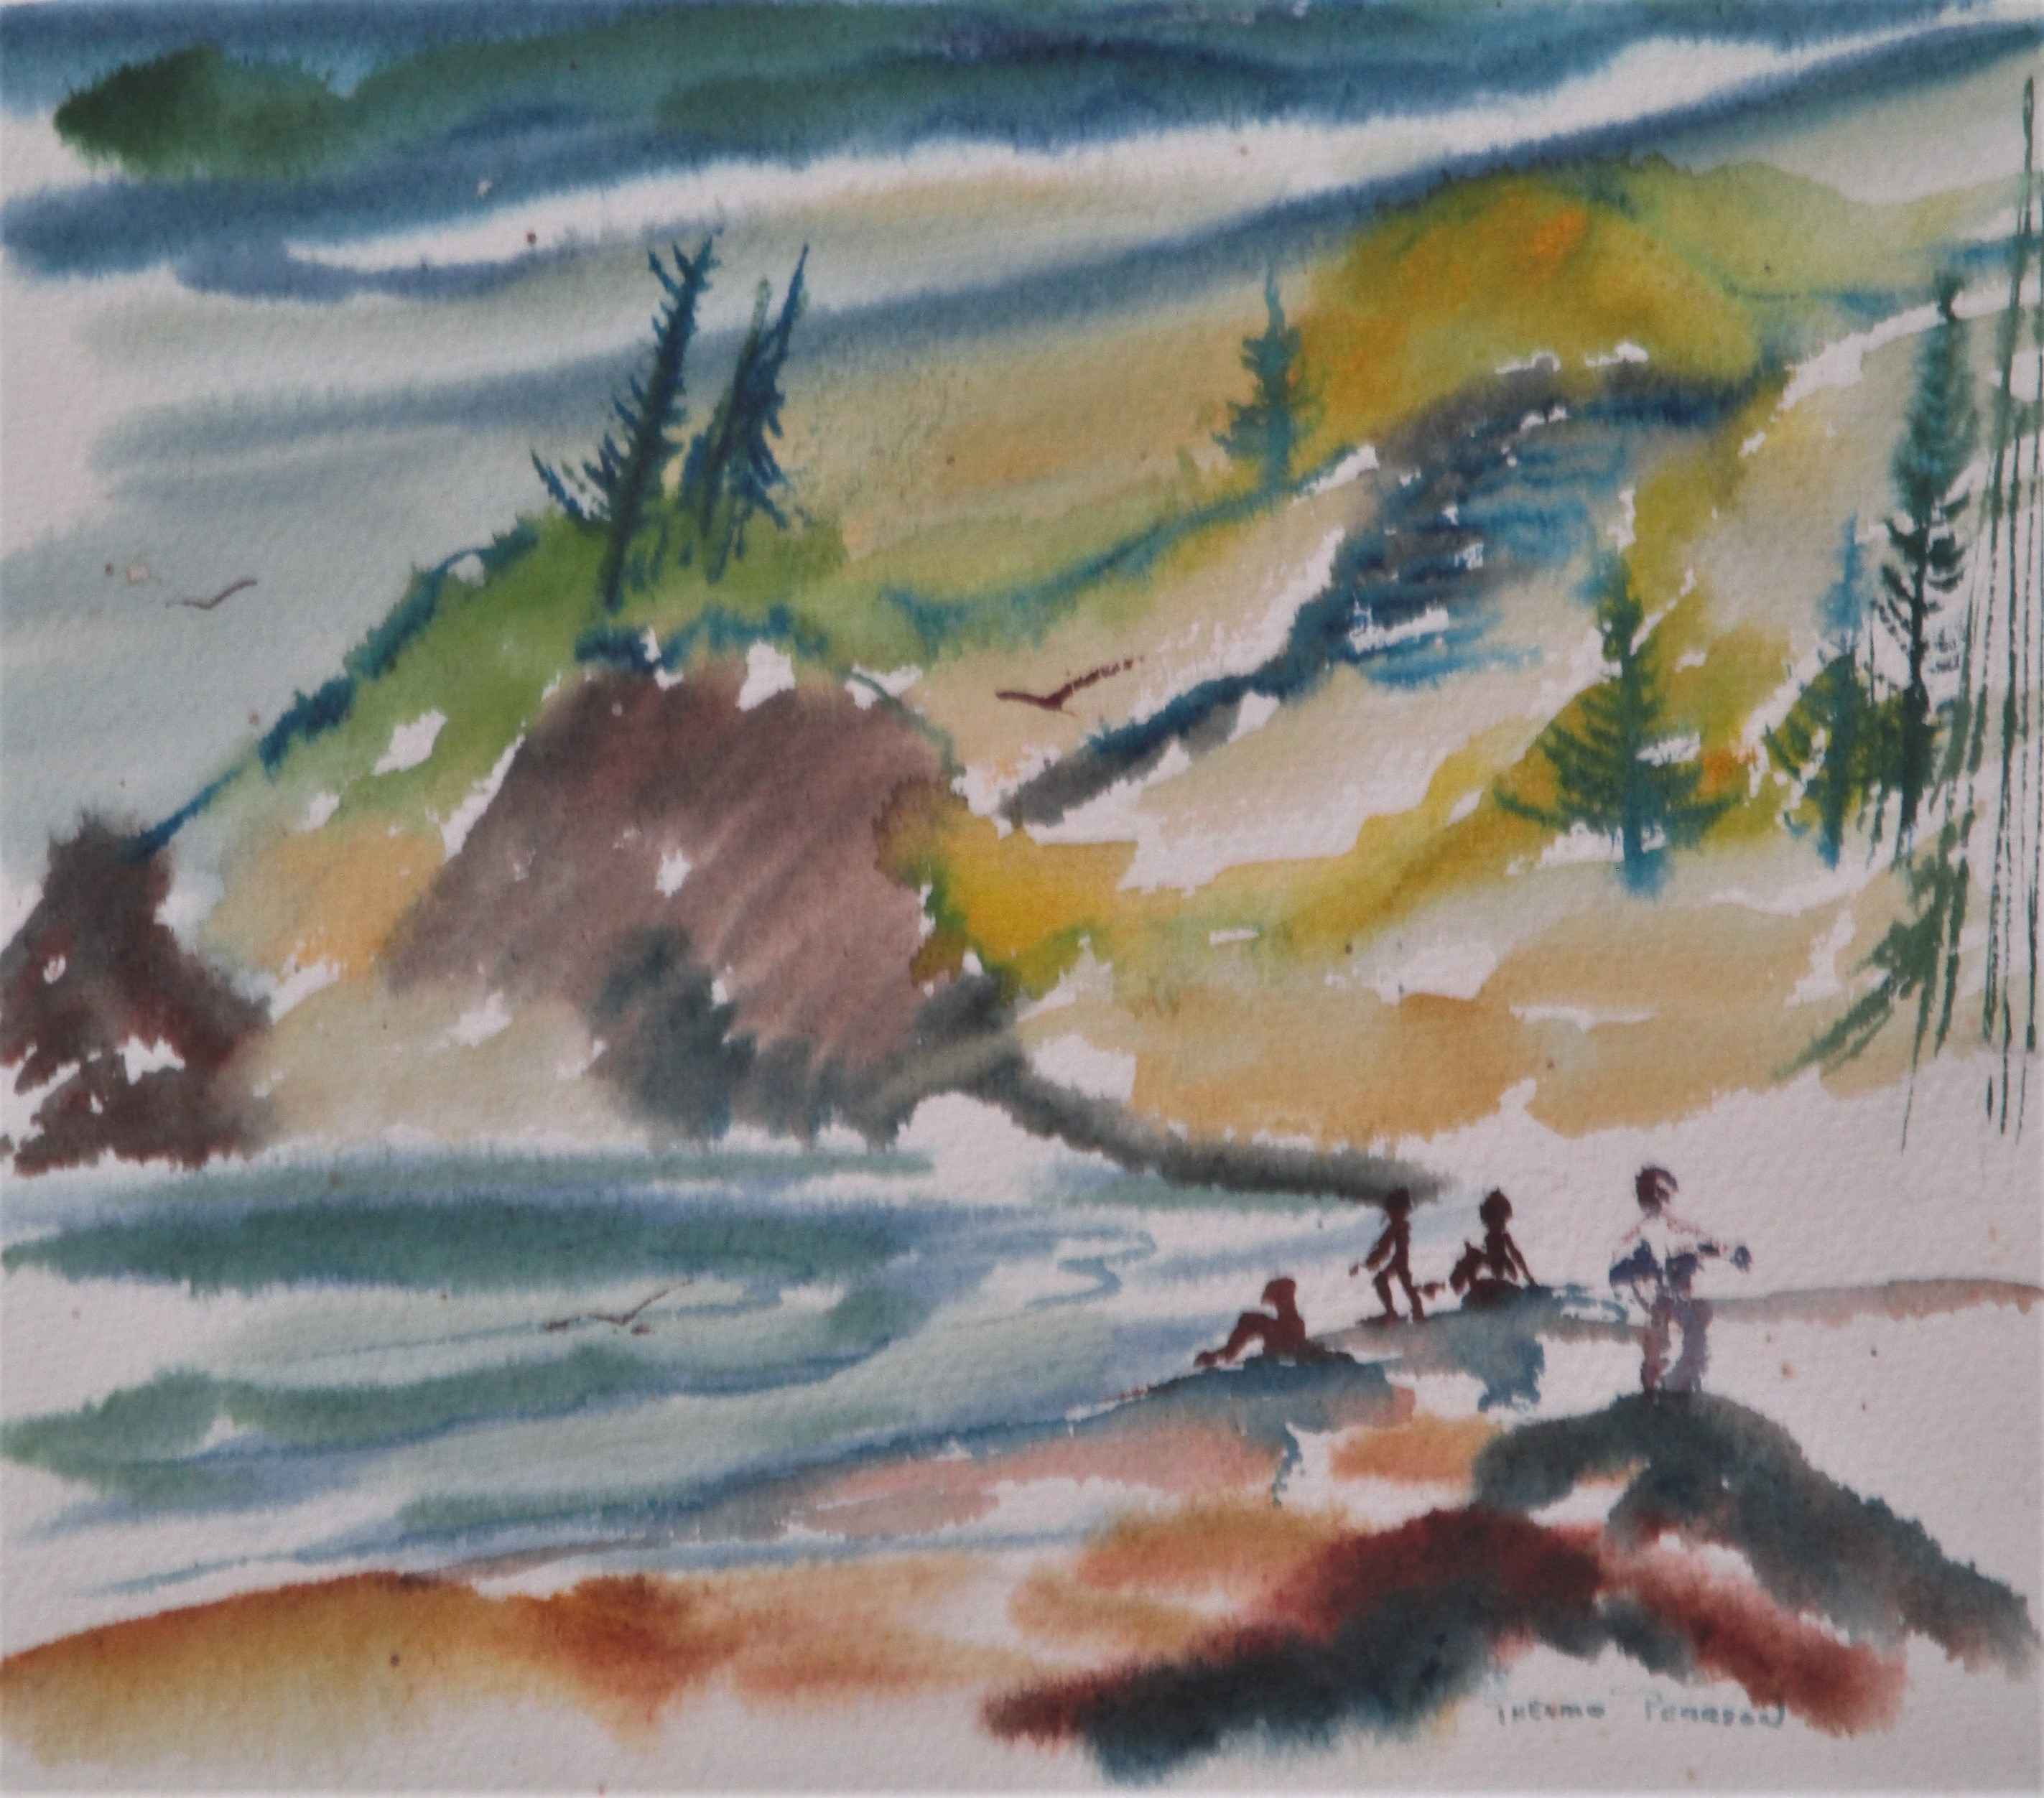 Unknown (beachscape) by  Thelma Pearson - Masterpiece Online